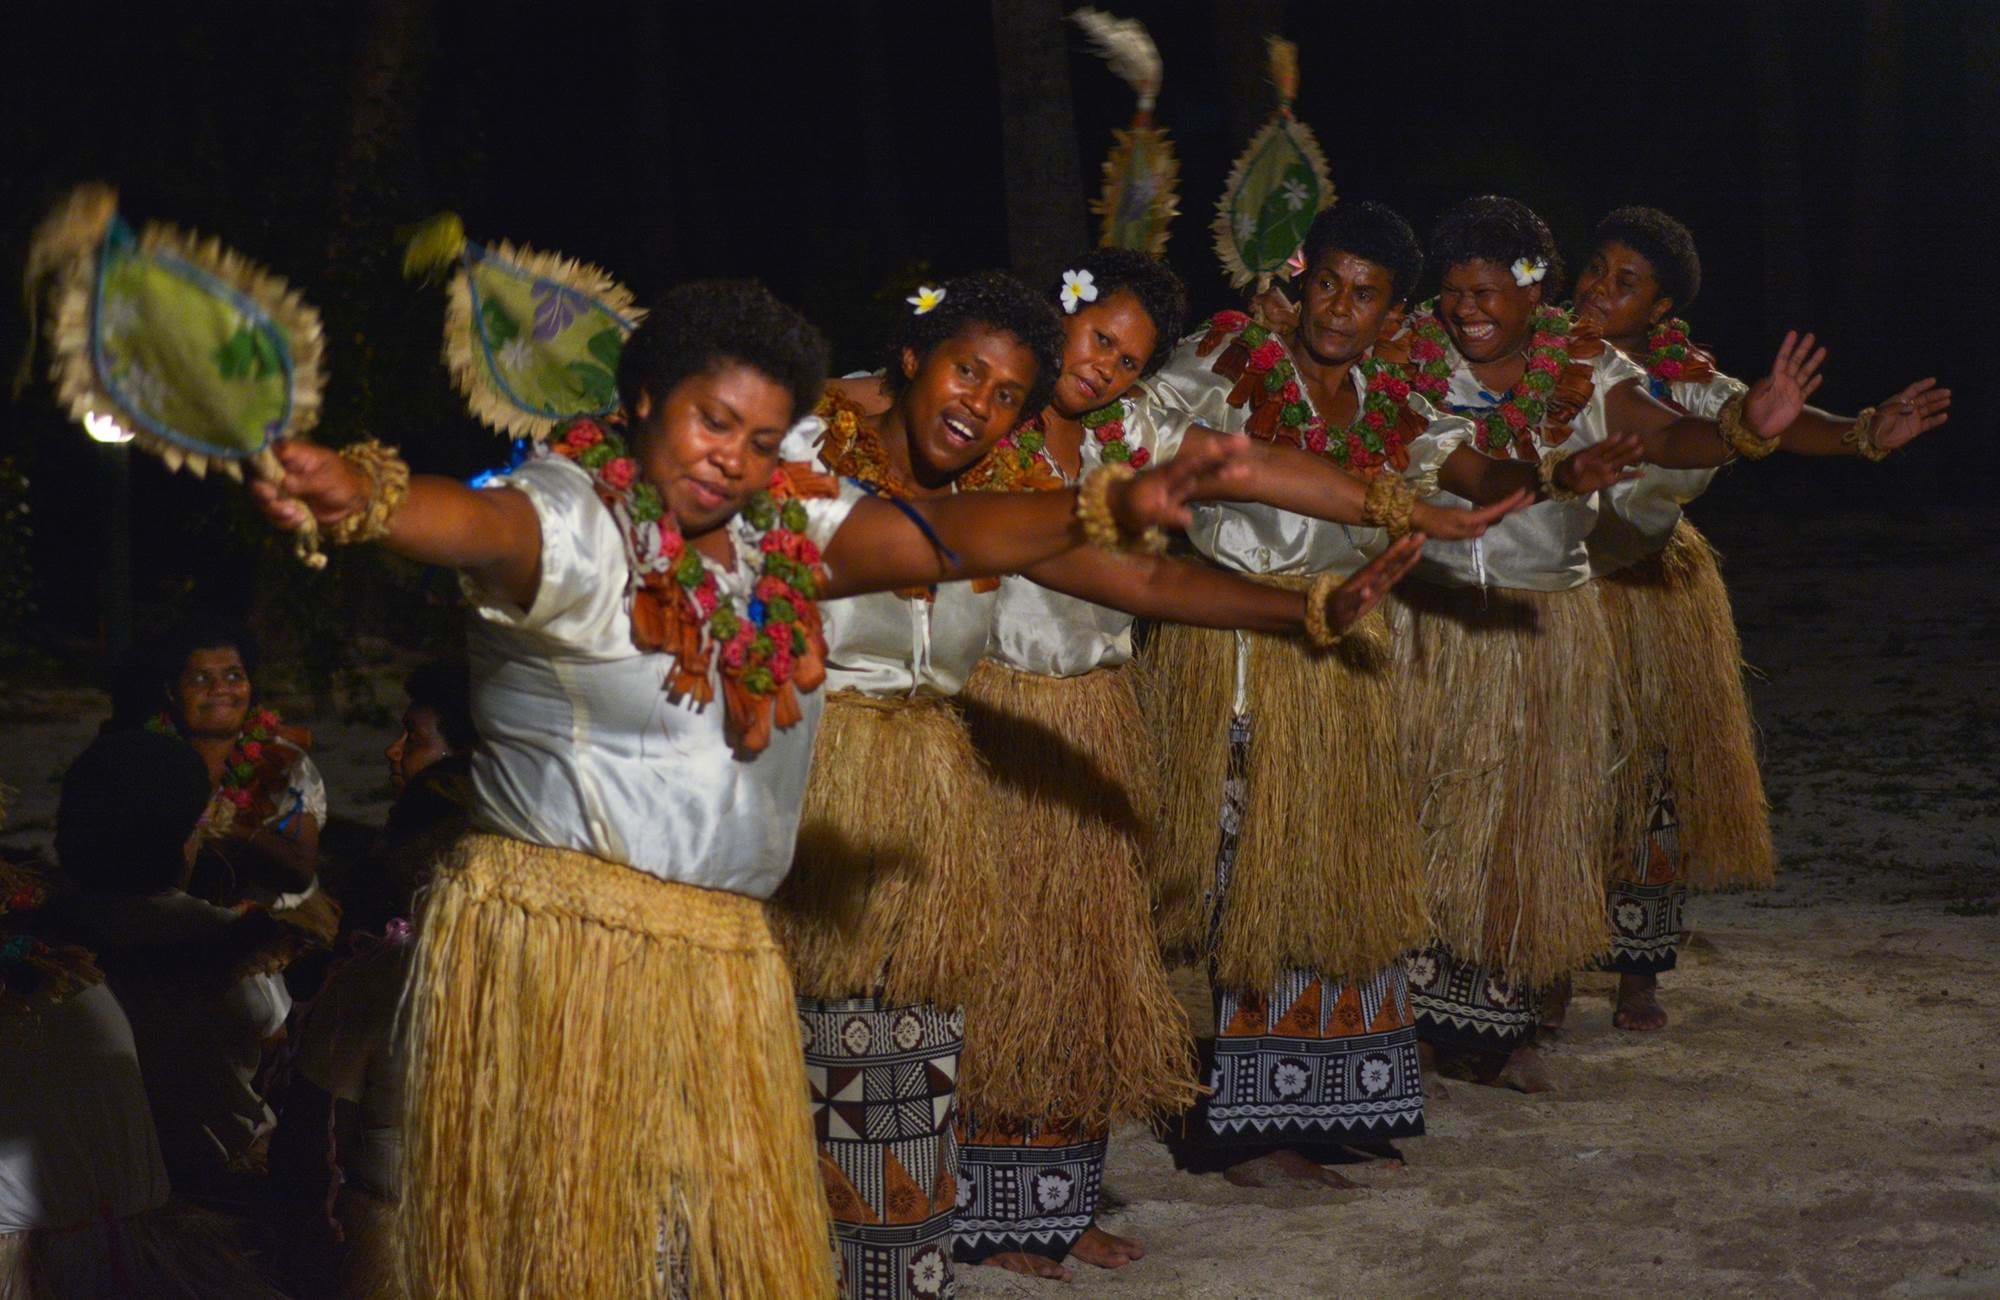 kvinnor dansar den traditionella dansen meke fan under en resa till fiji